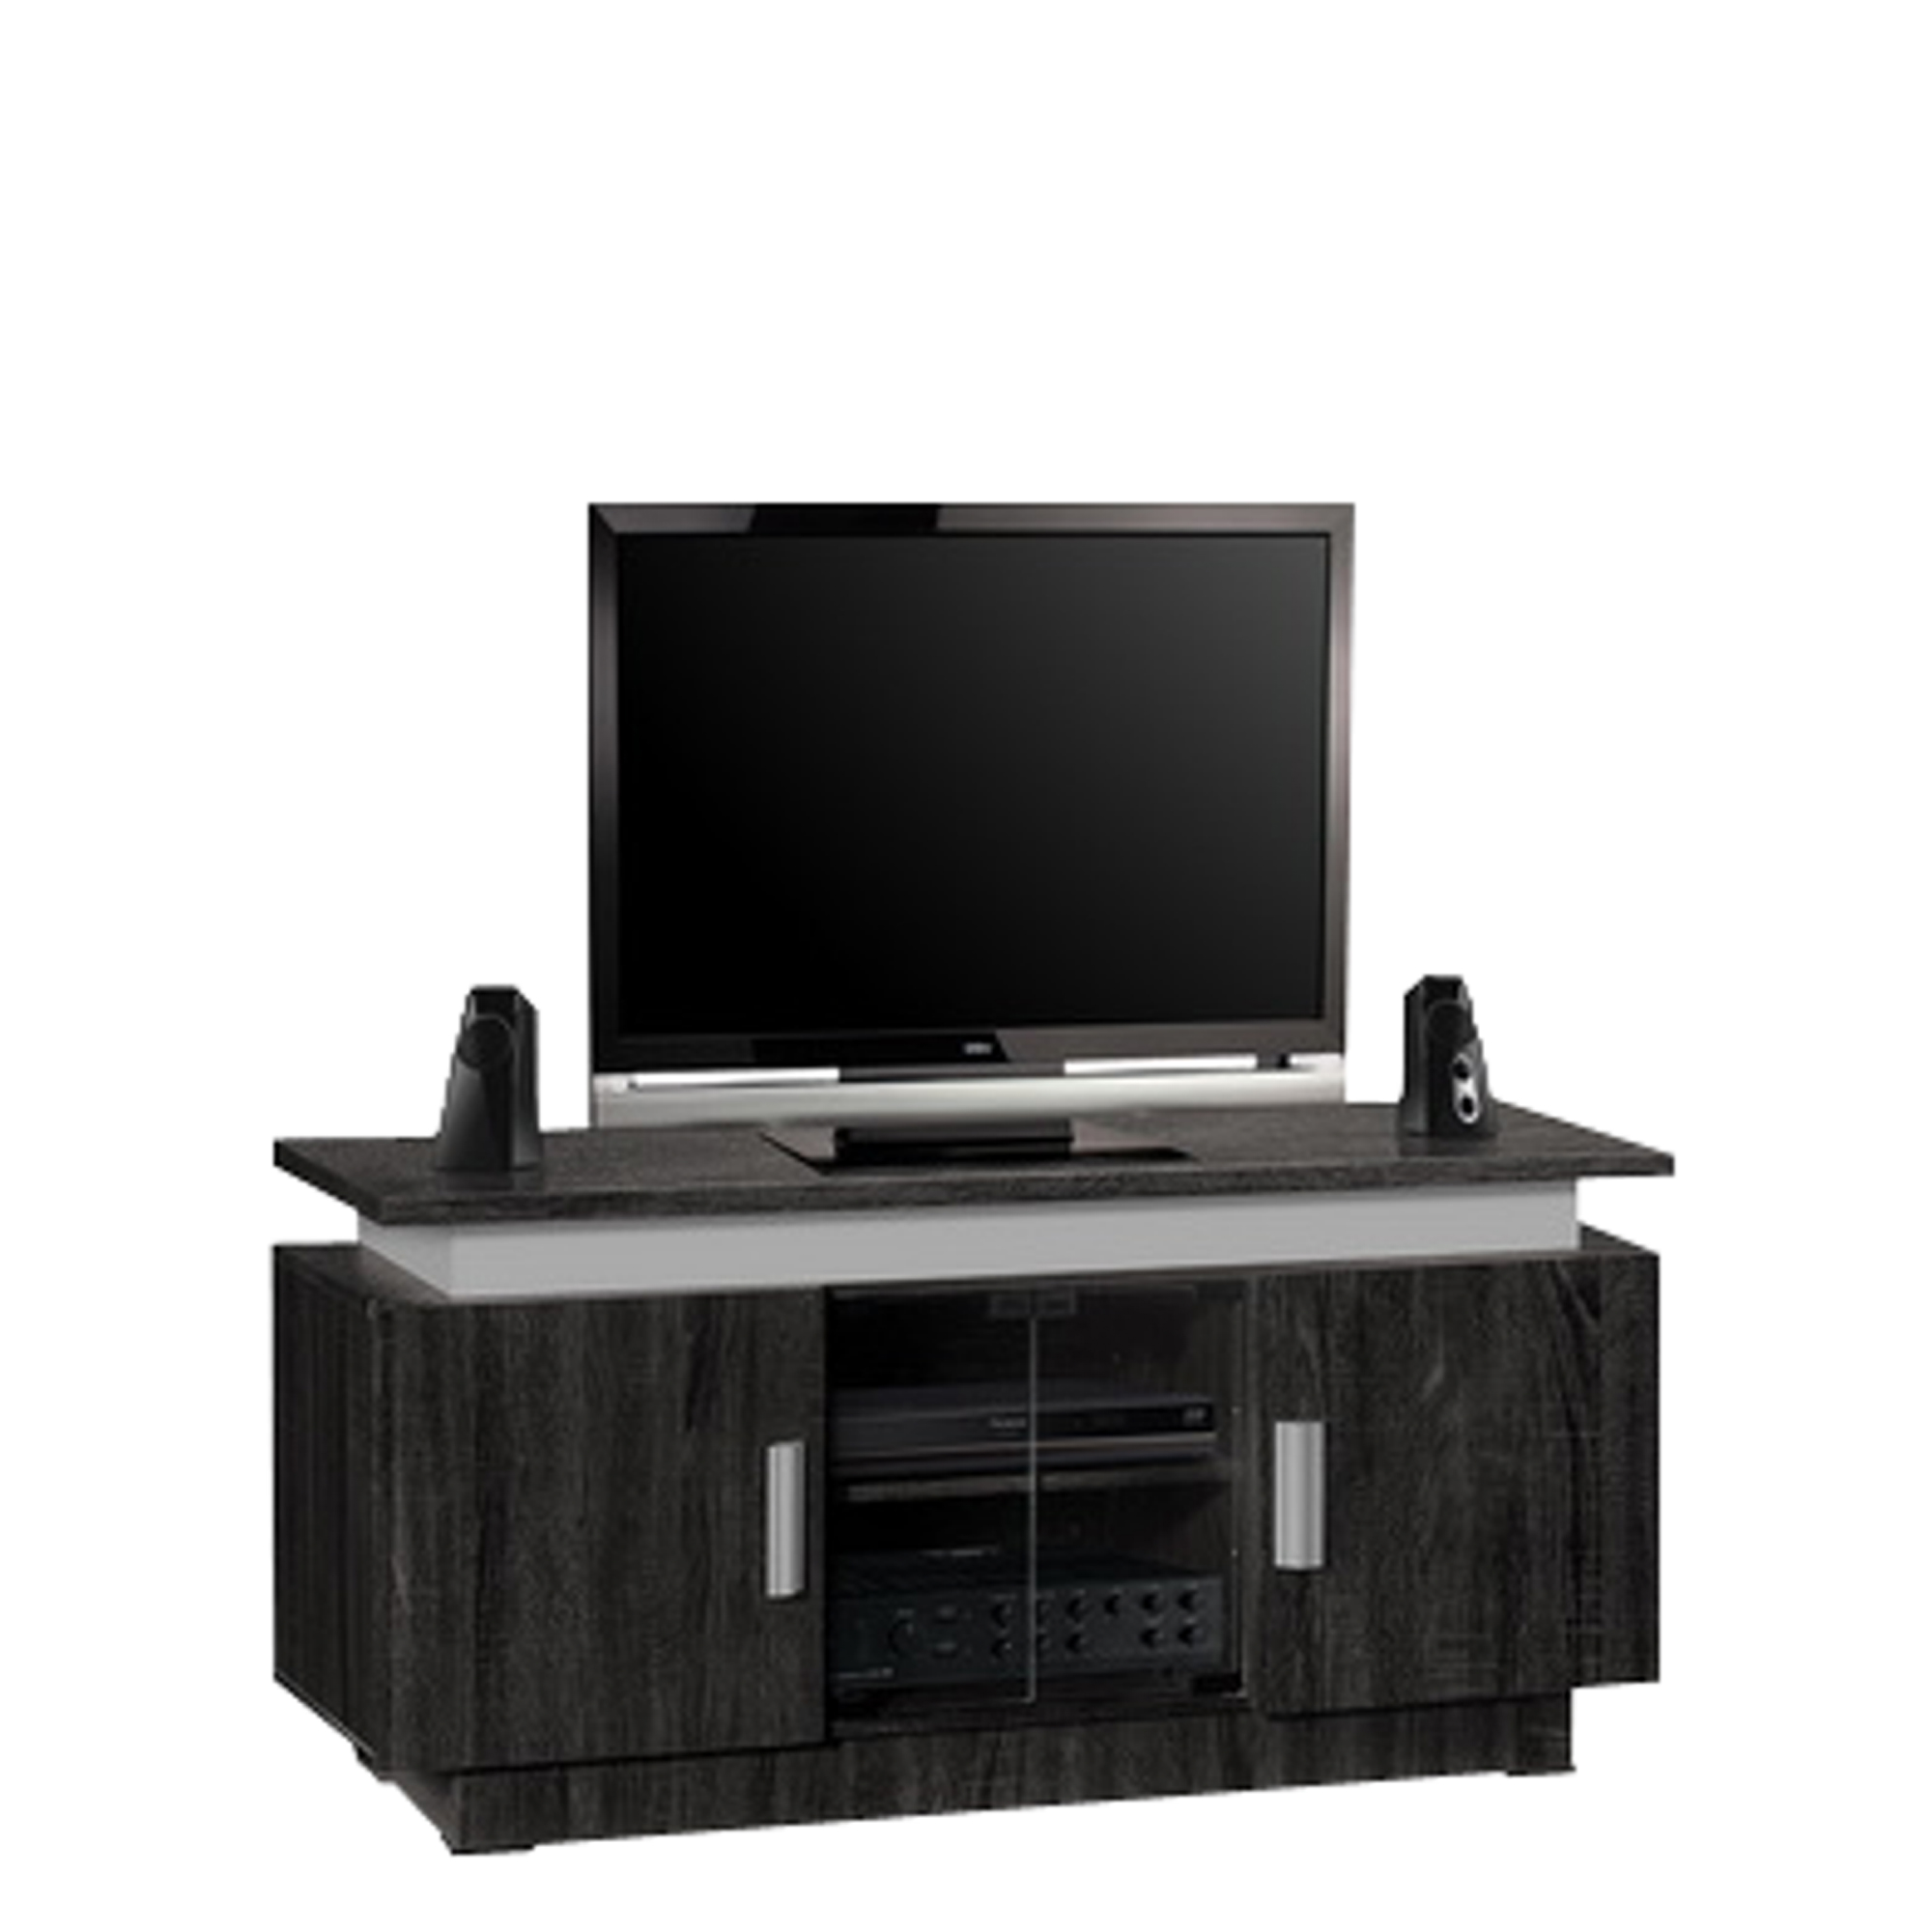 Naturalis Furniture Meja TV CRD 8787